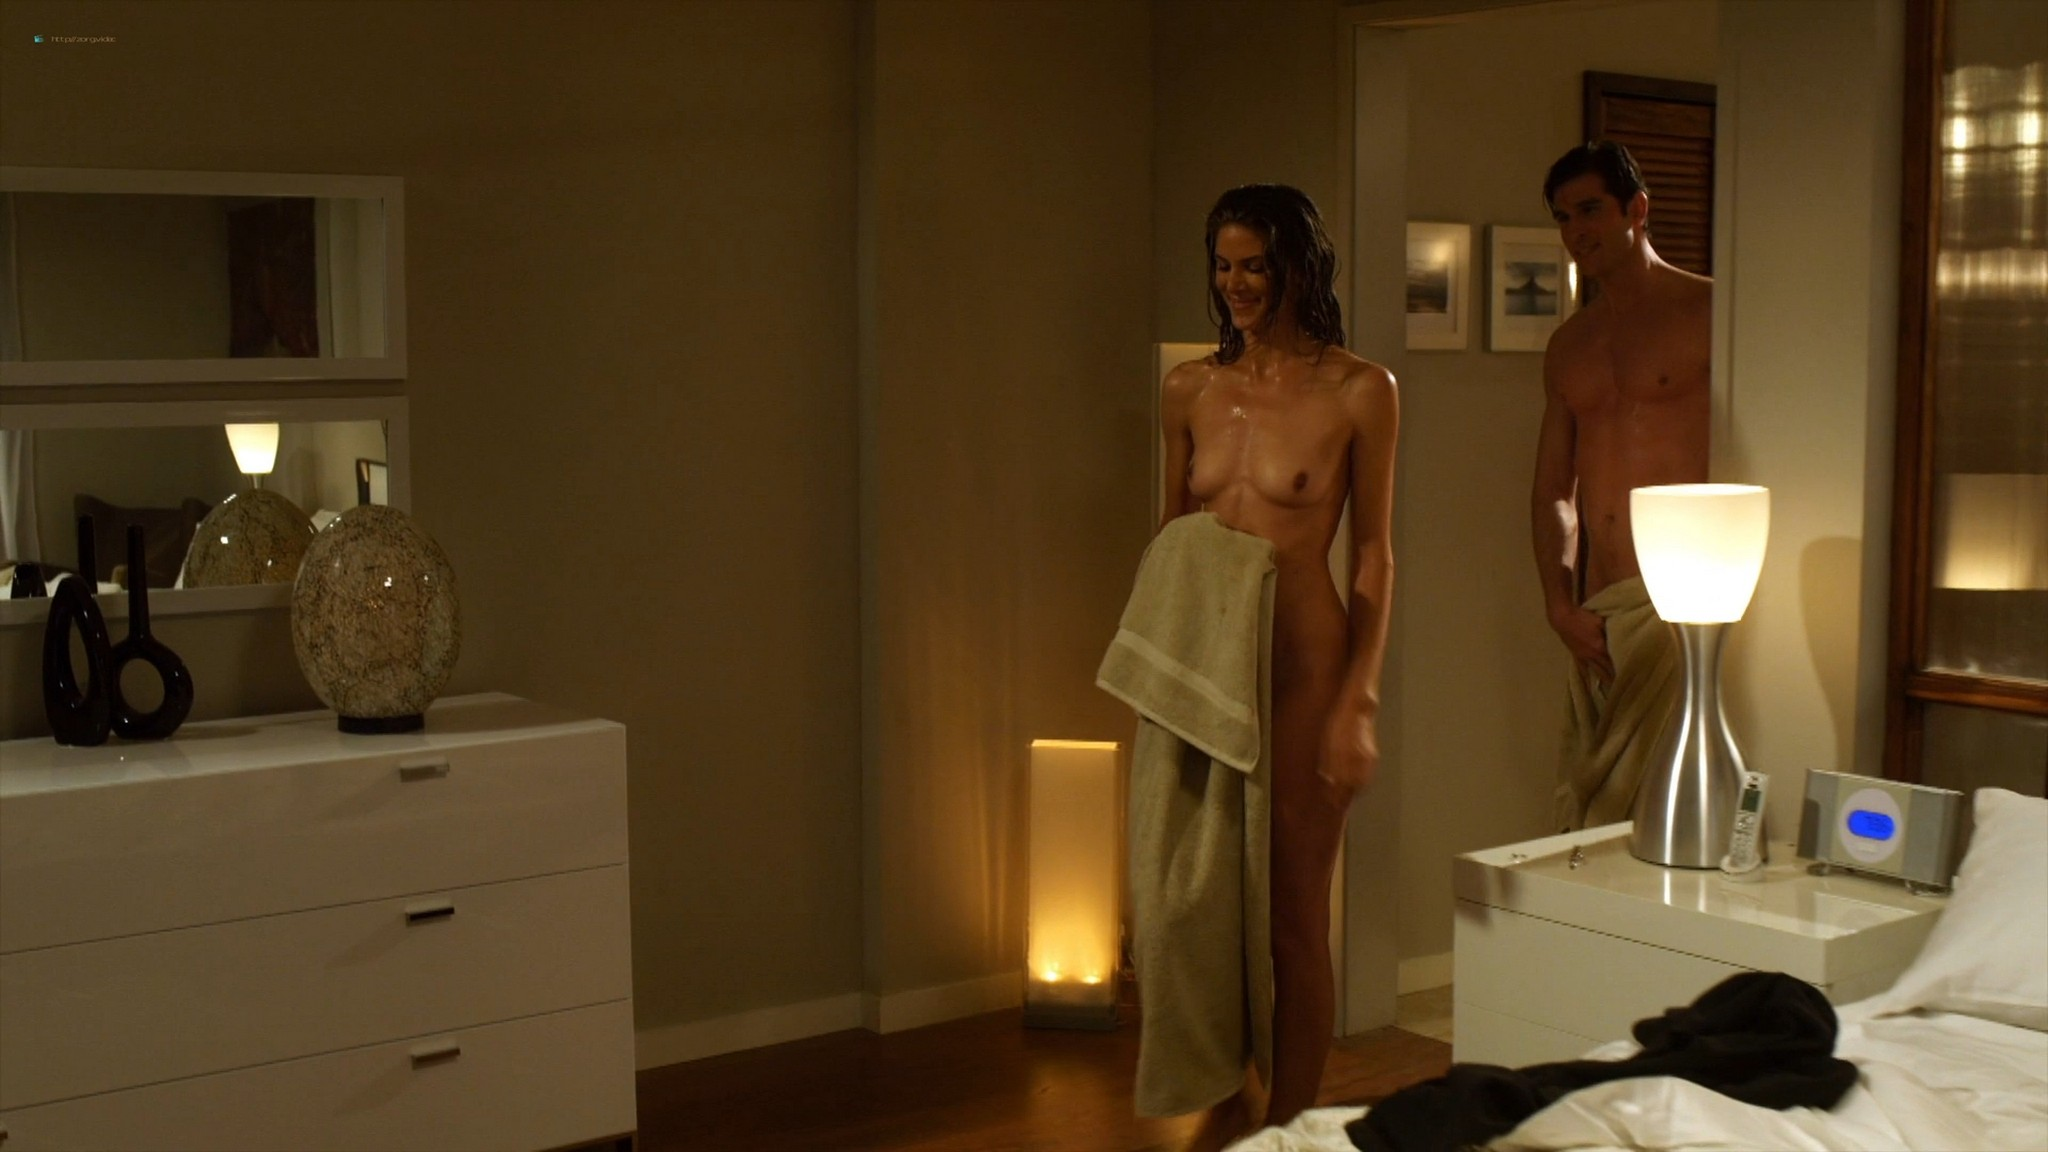 Ana Alexander nude sex Ragan Brooks naked in the shower - Chemistry (2011) s1e5 HD 1080p (9)